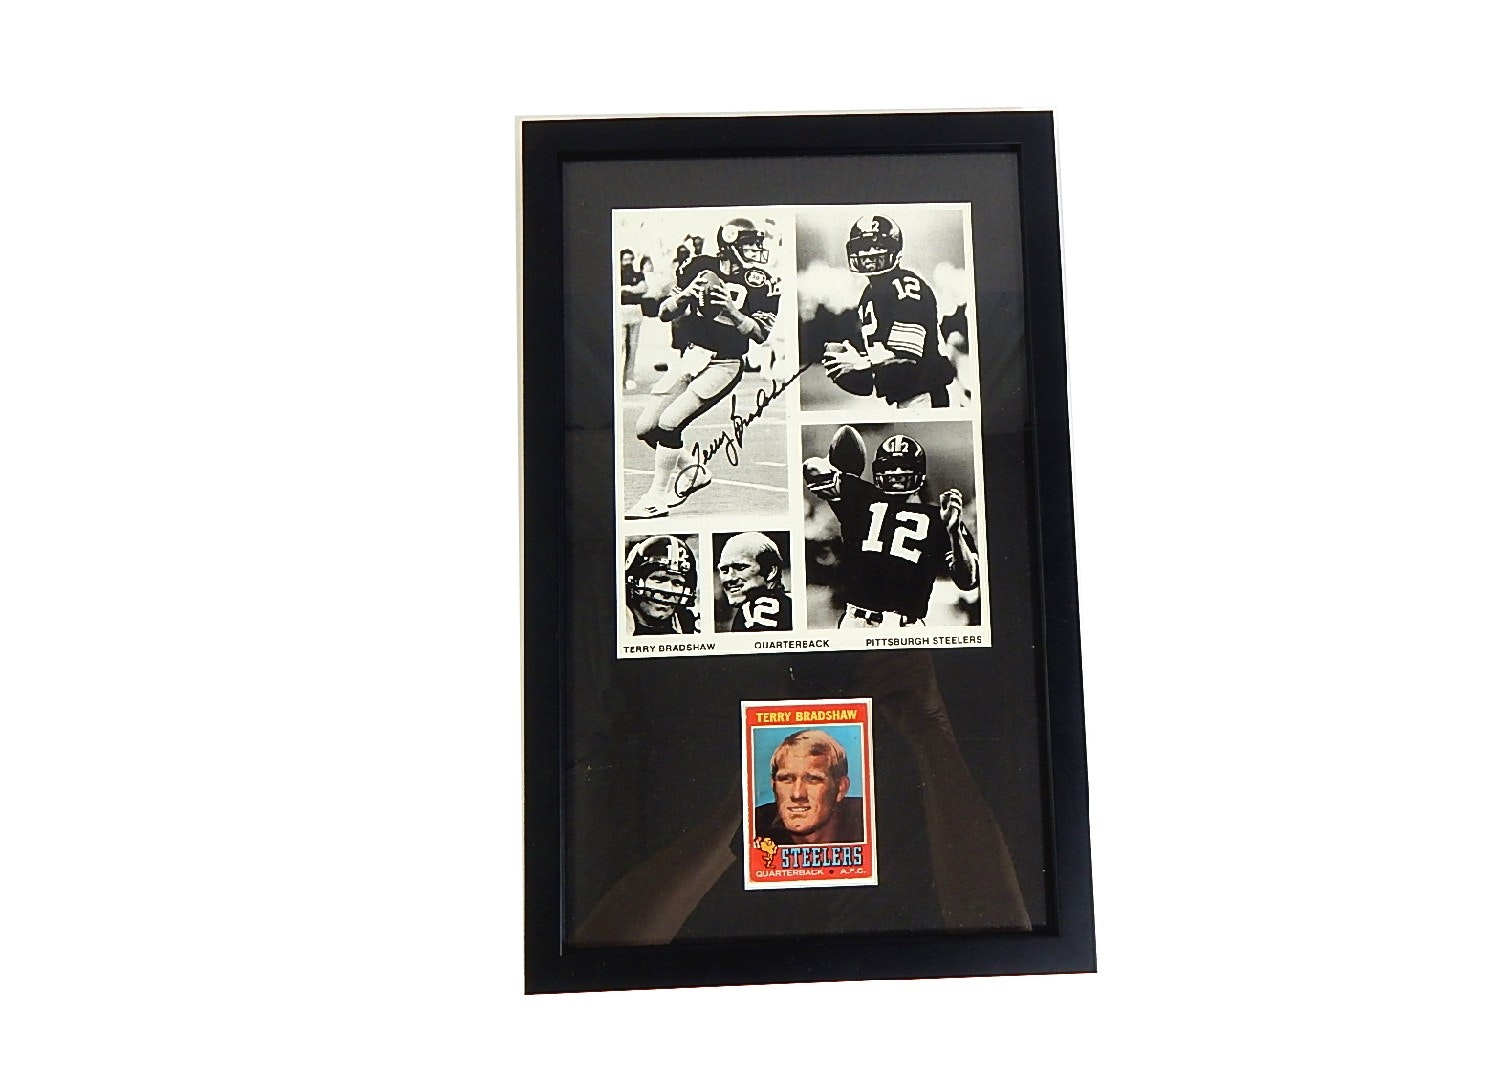 1971 Terry Bradshaw Topps Rookie Card and Signed Photograph Matted and Framed